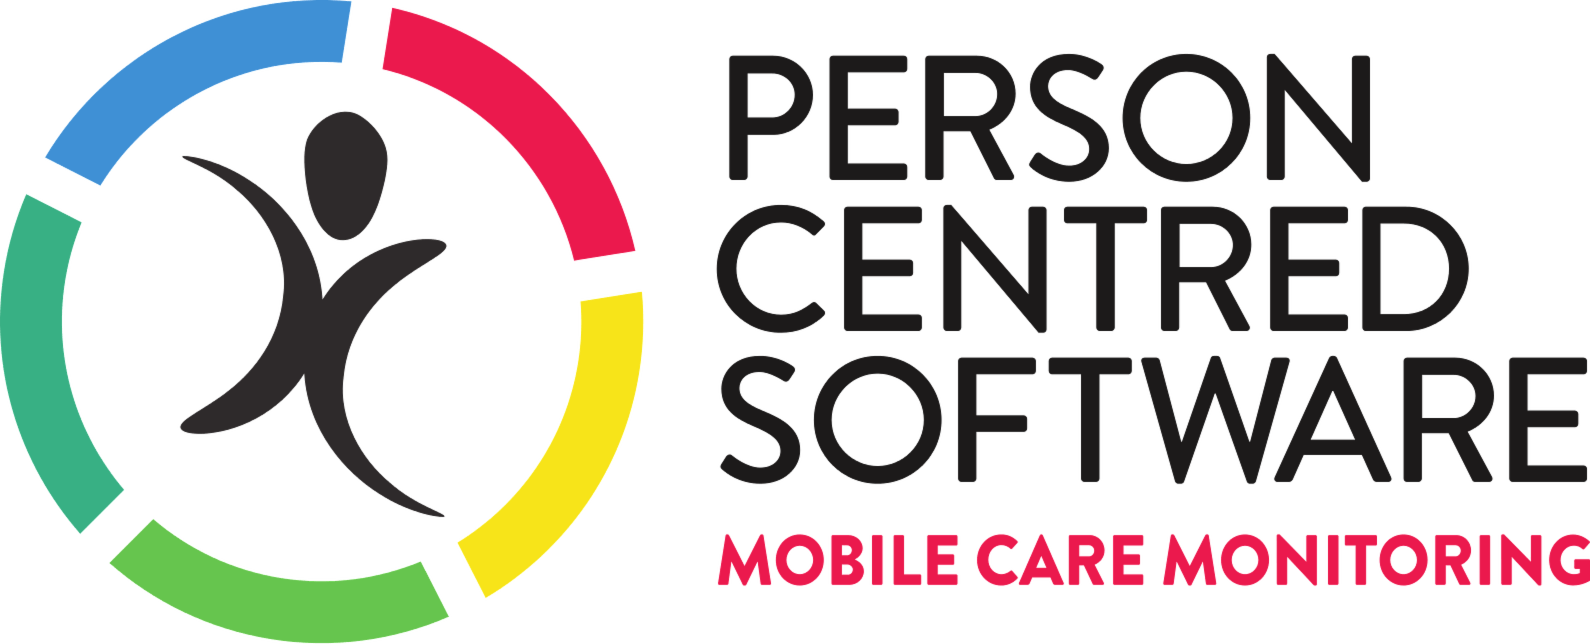 Person Centred Software Ltd